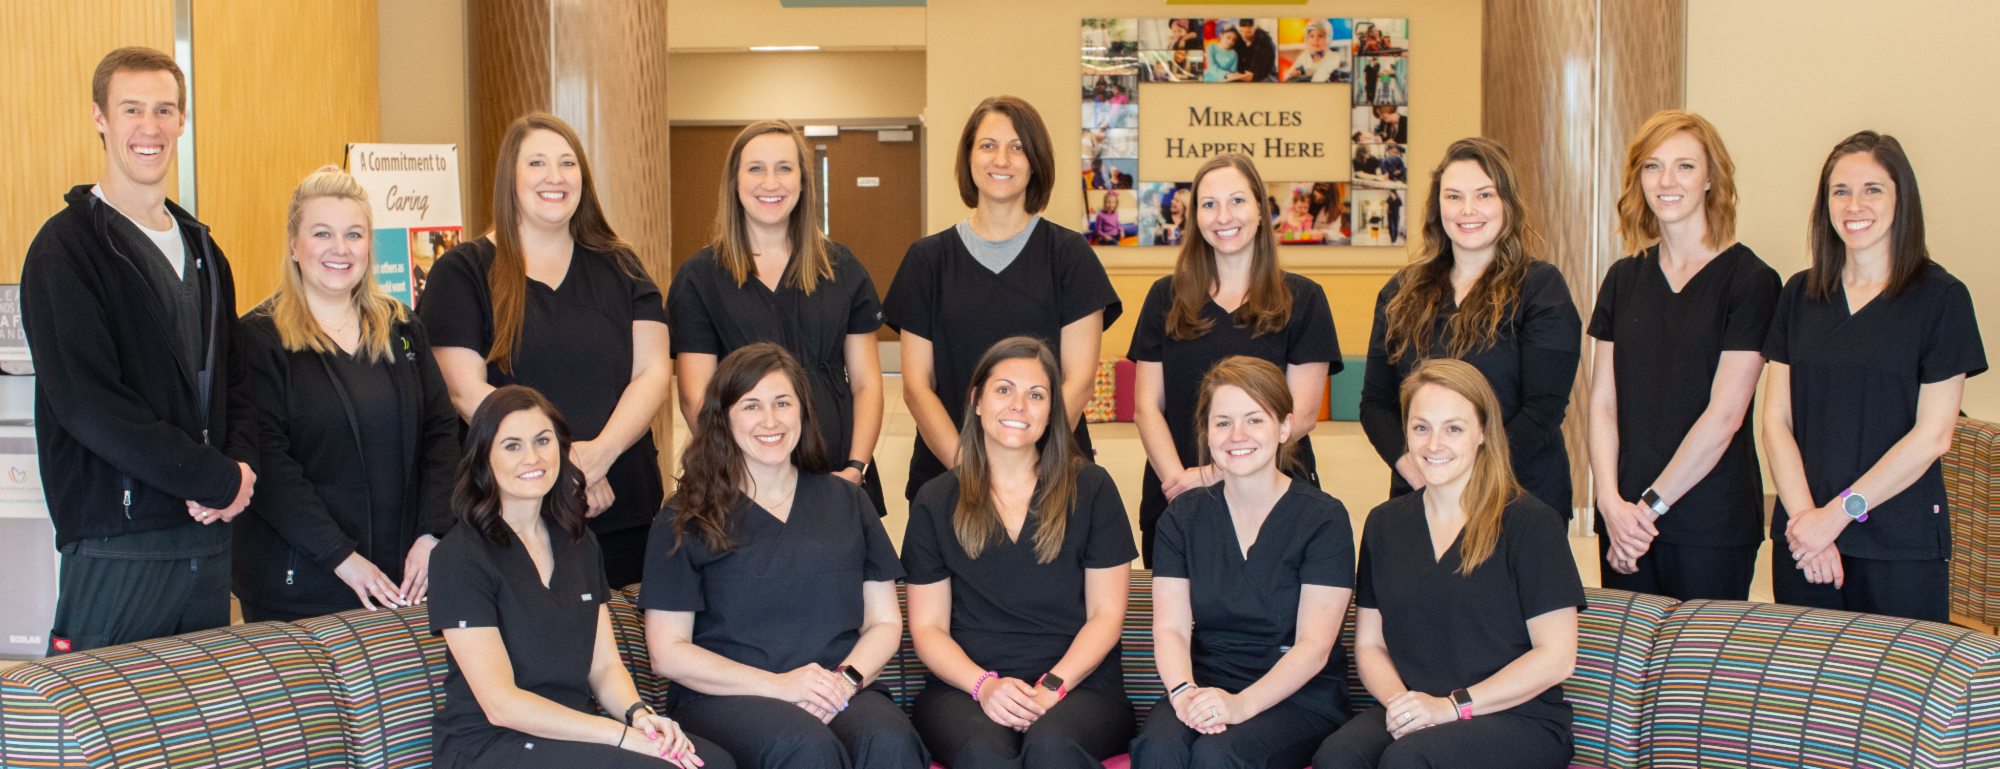 Occupational Therapists Help Patients Live Life to Its Fullest